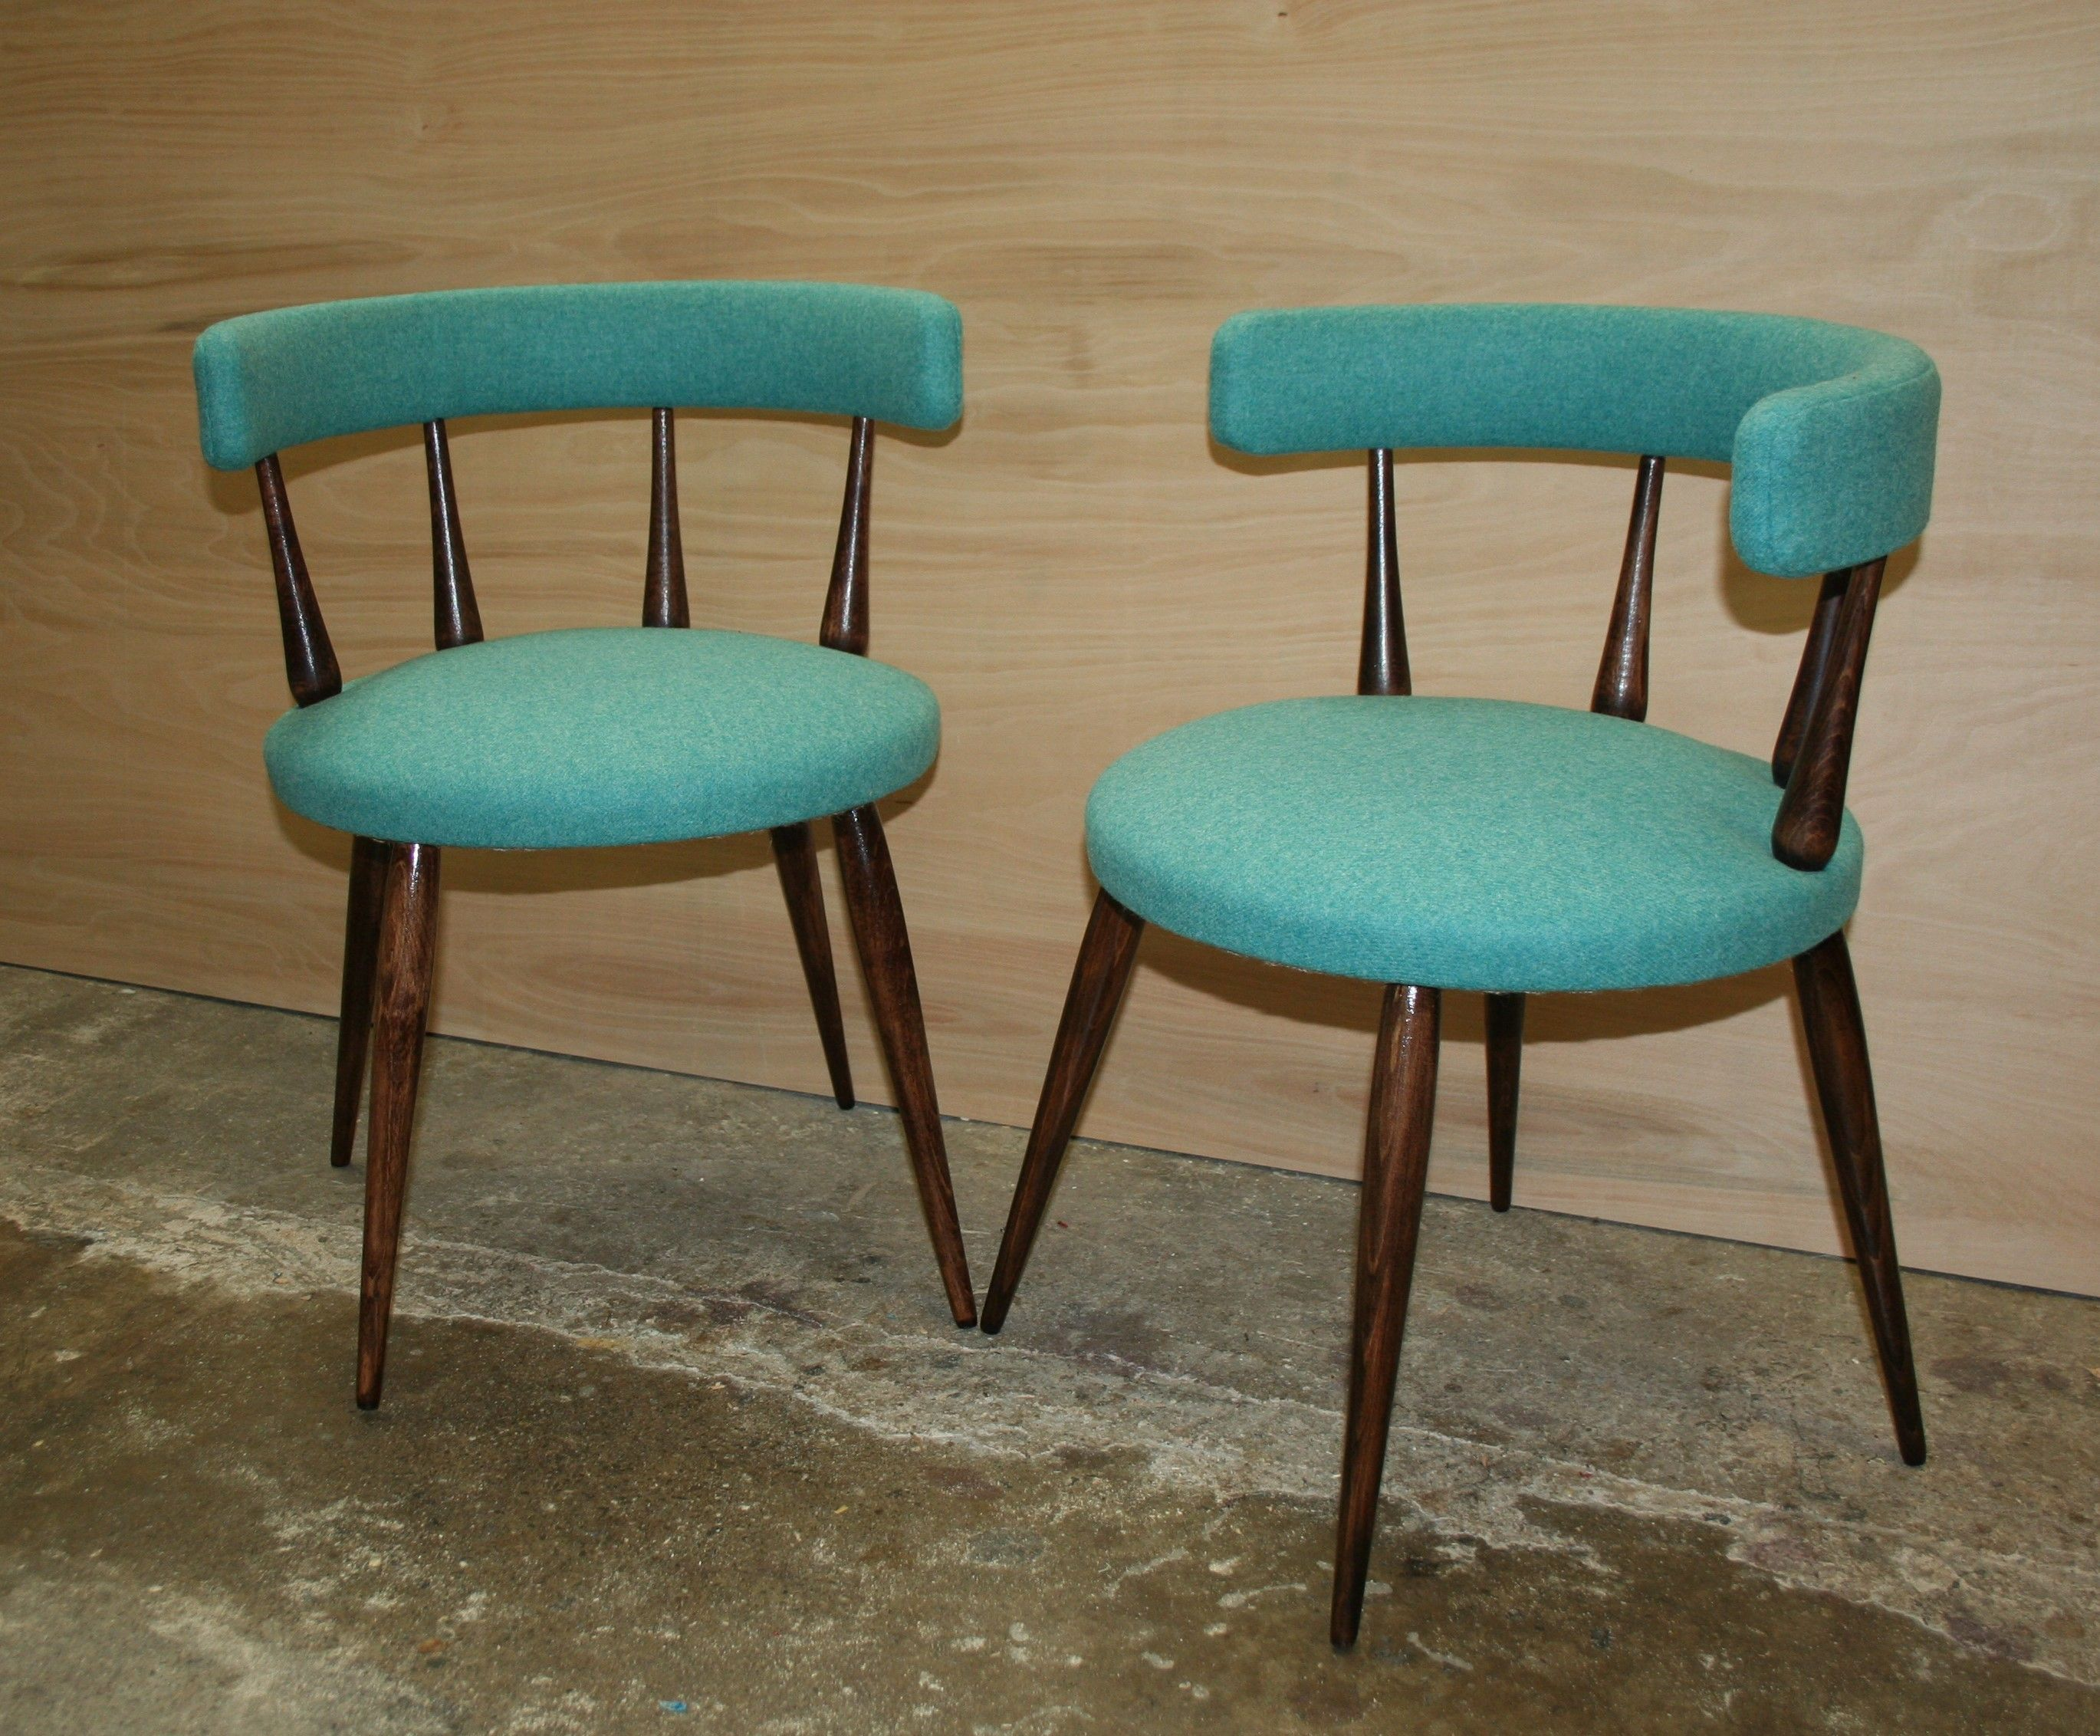 Turquoise chairs | Tub chair, Cafe style and French cafe